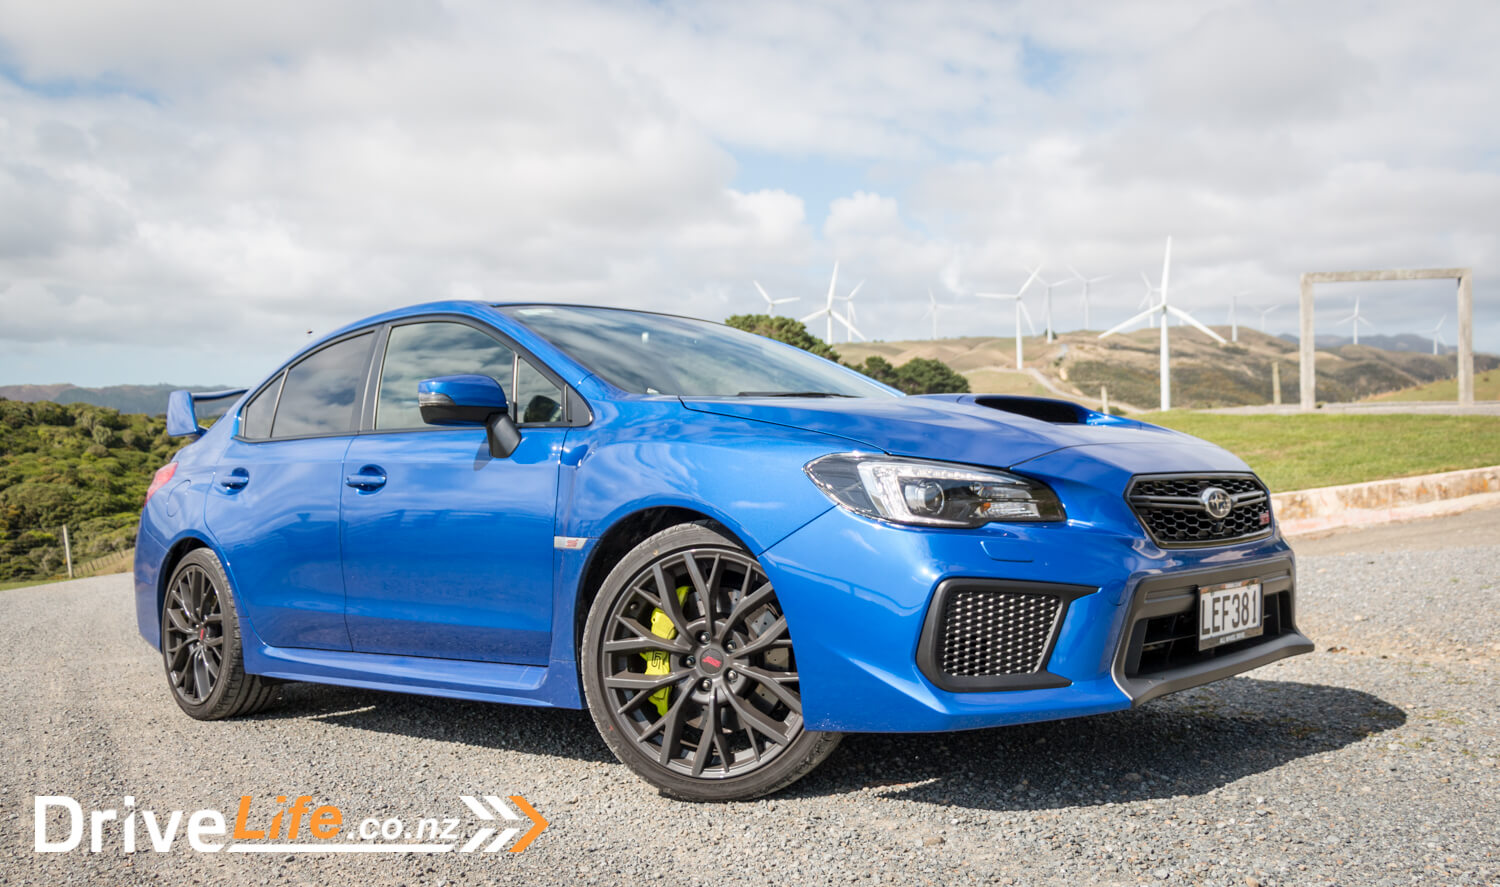 2018 Subaru Wrx Sti Premium New Car Review Full Time Race Mode Blue With White Rims The Wing Is Optional And Can Be Replaced A Style Lip Spoiler But I Think It Looks Great Suits Design Of Both From Side